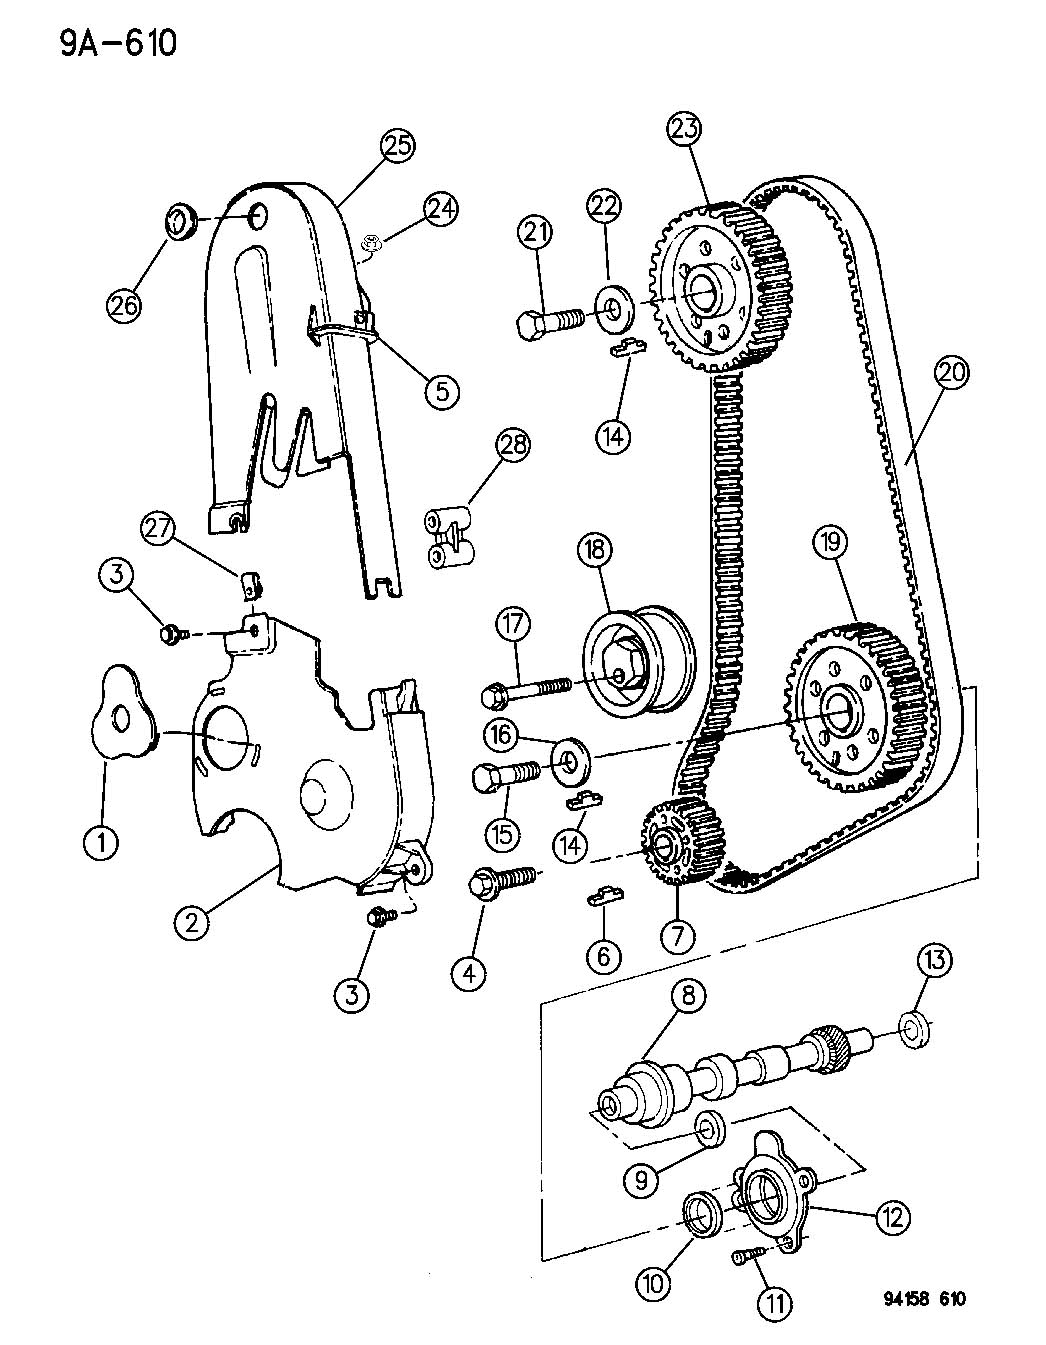 94 Dodge Spirit Vacuum Diagram Library Of Wiring Diagrams 1993 Fuse Box 93 Dynasty Auto 1994 Transmission 92